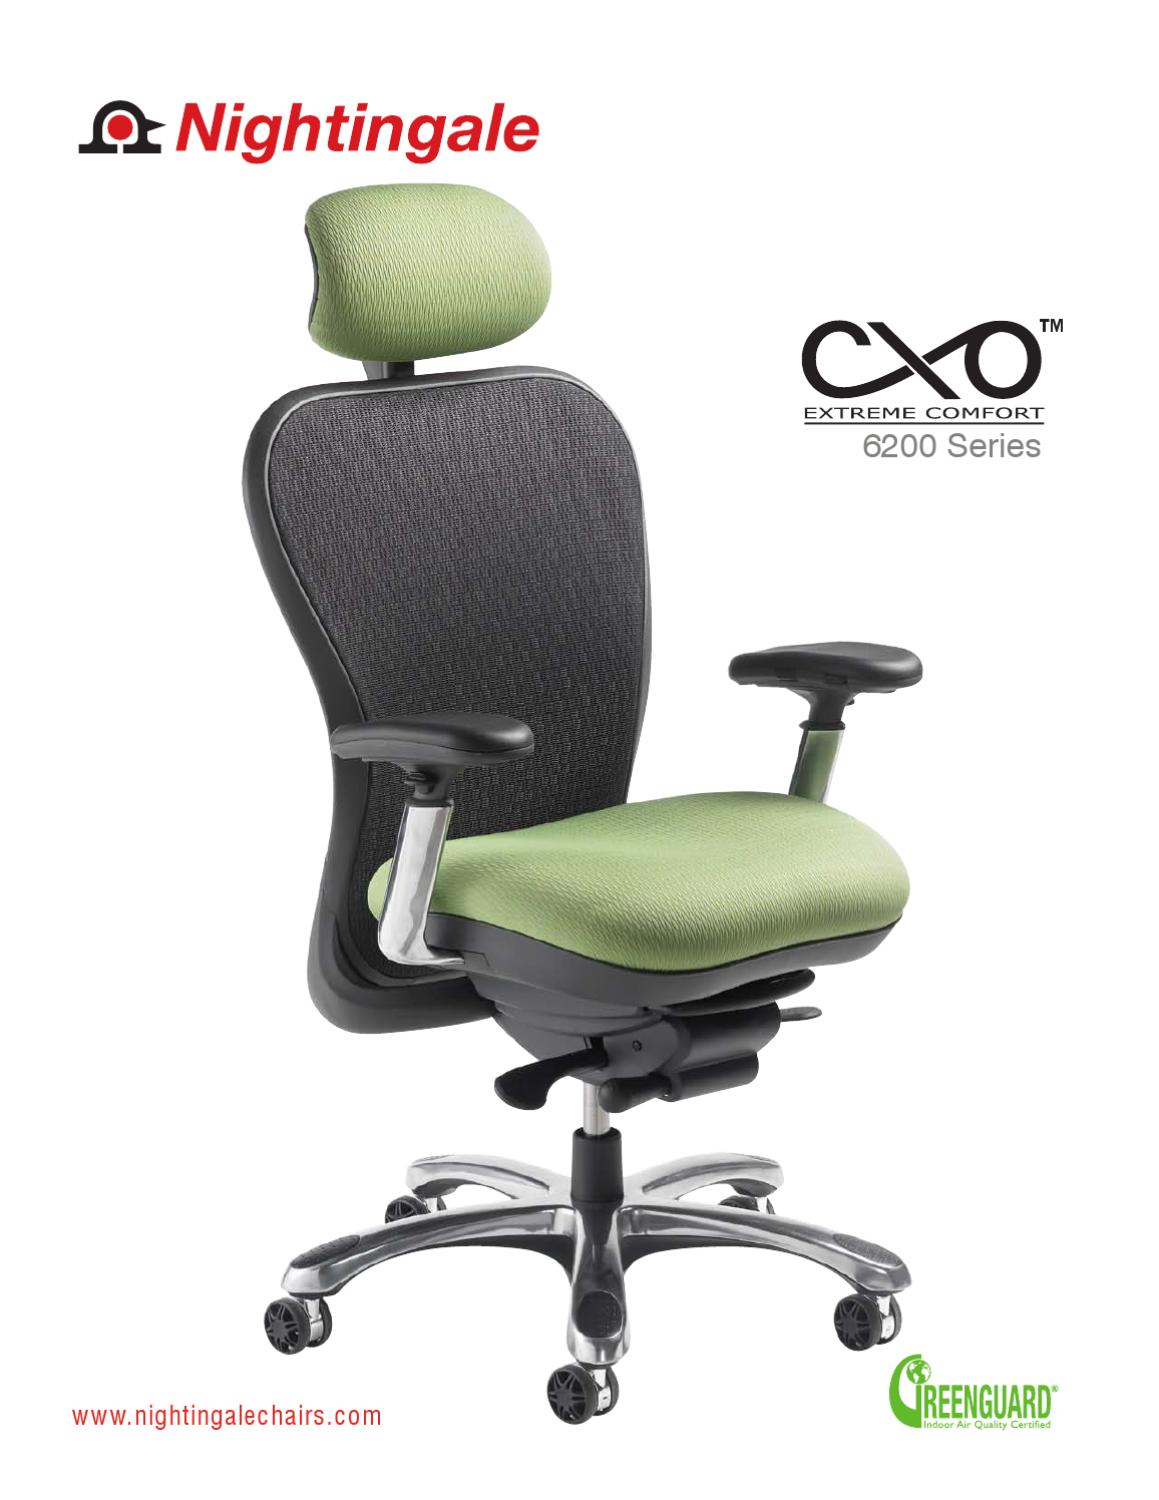 Nightingale Cxo Office Ergonomic Chair